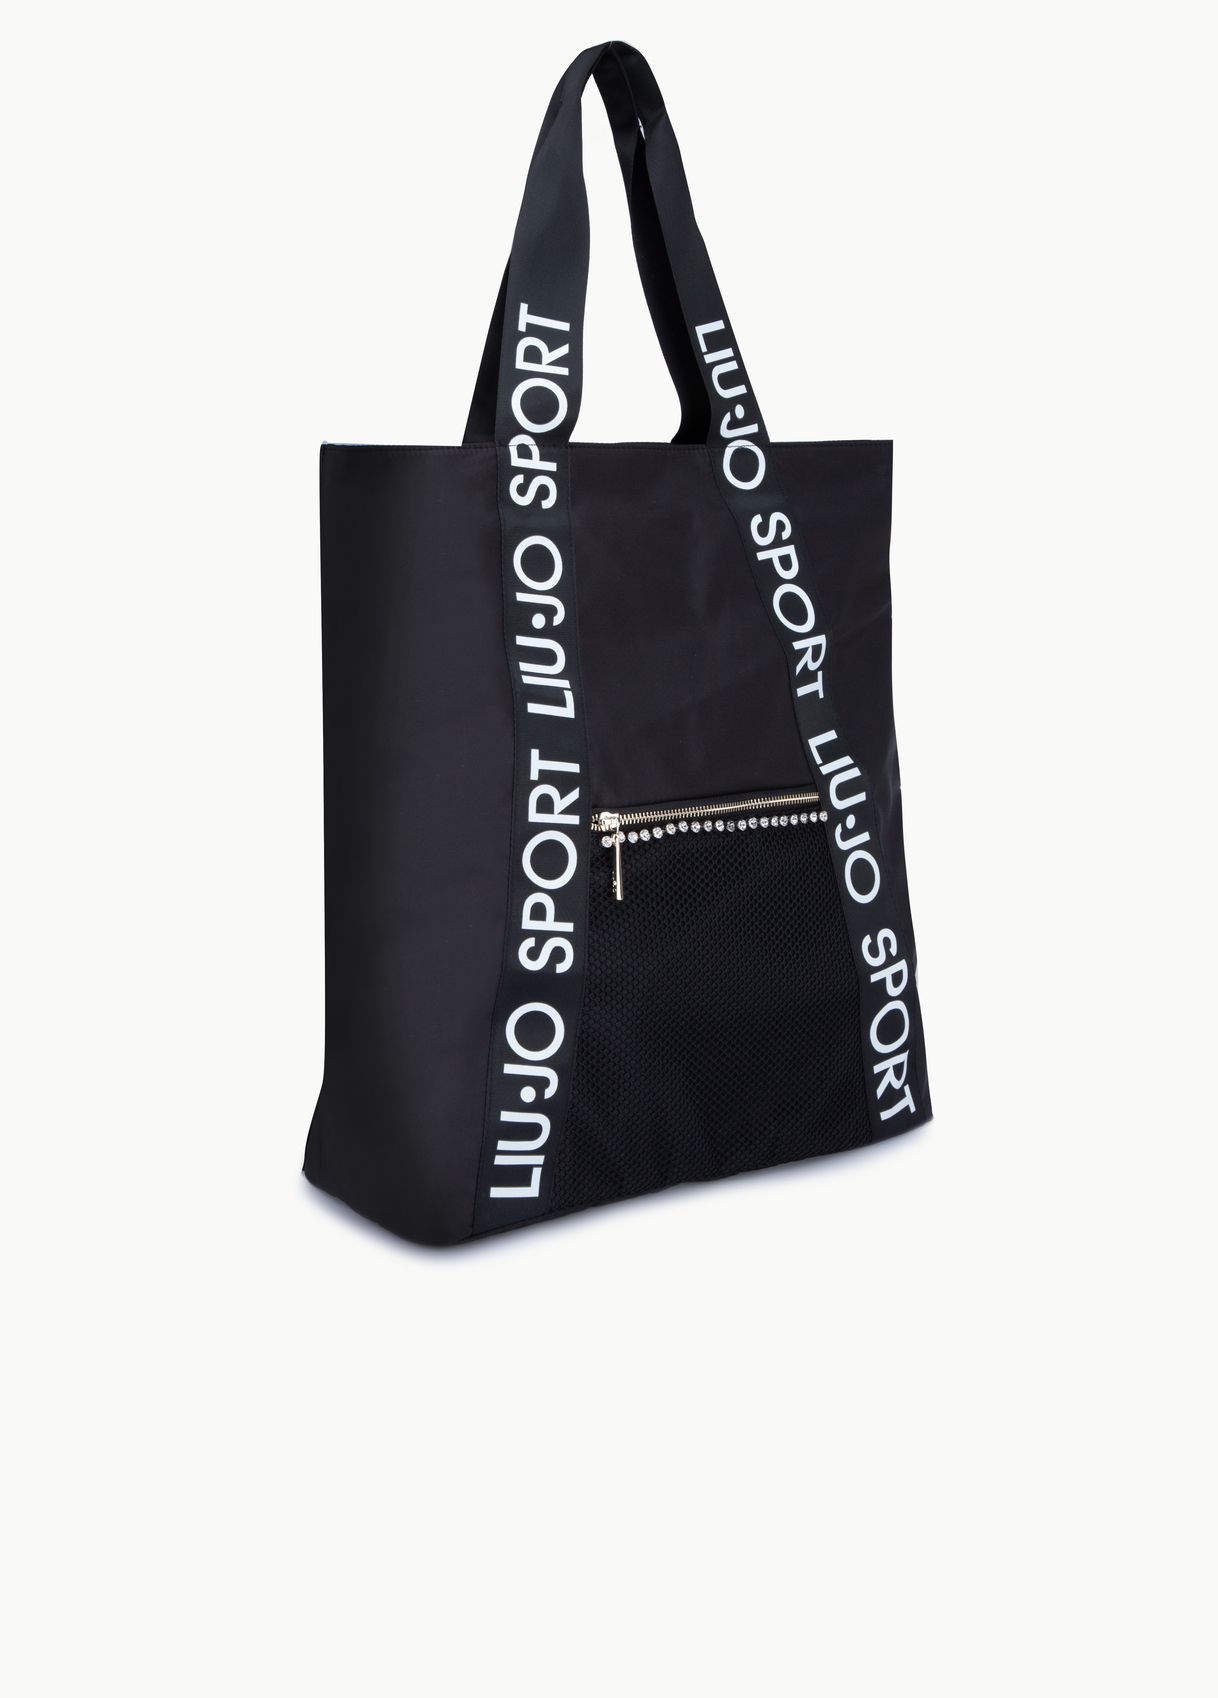 TA0231 T0300 SHOPPING BAG 22222 3